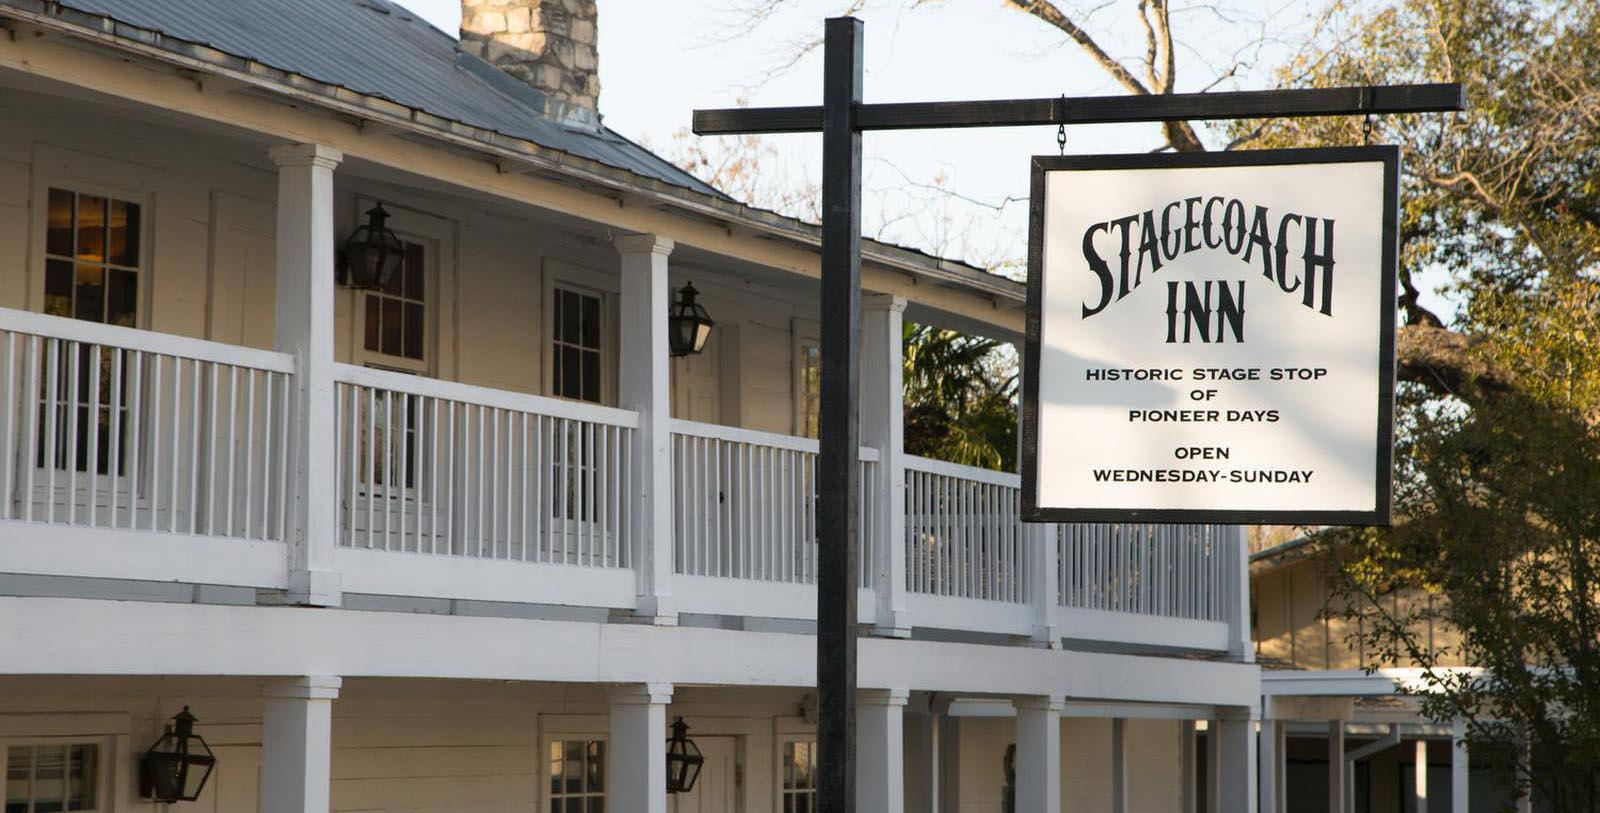 The Stagecoach Inn